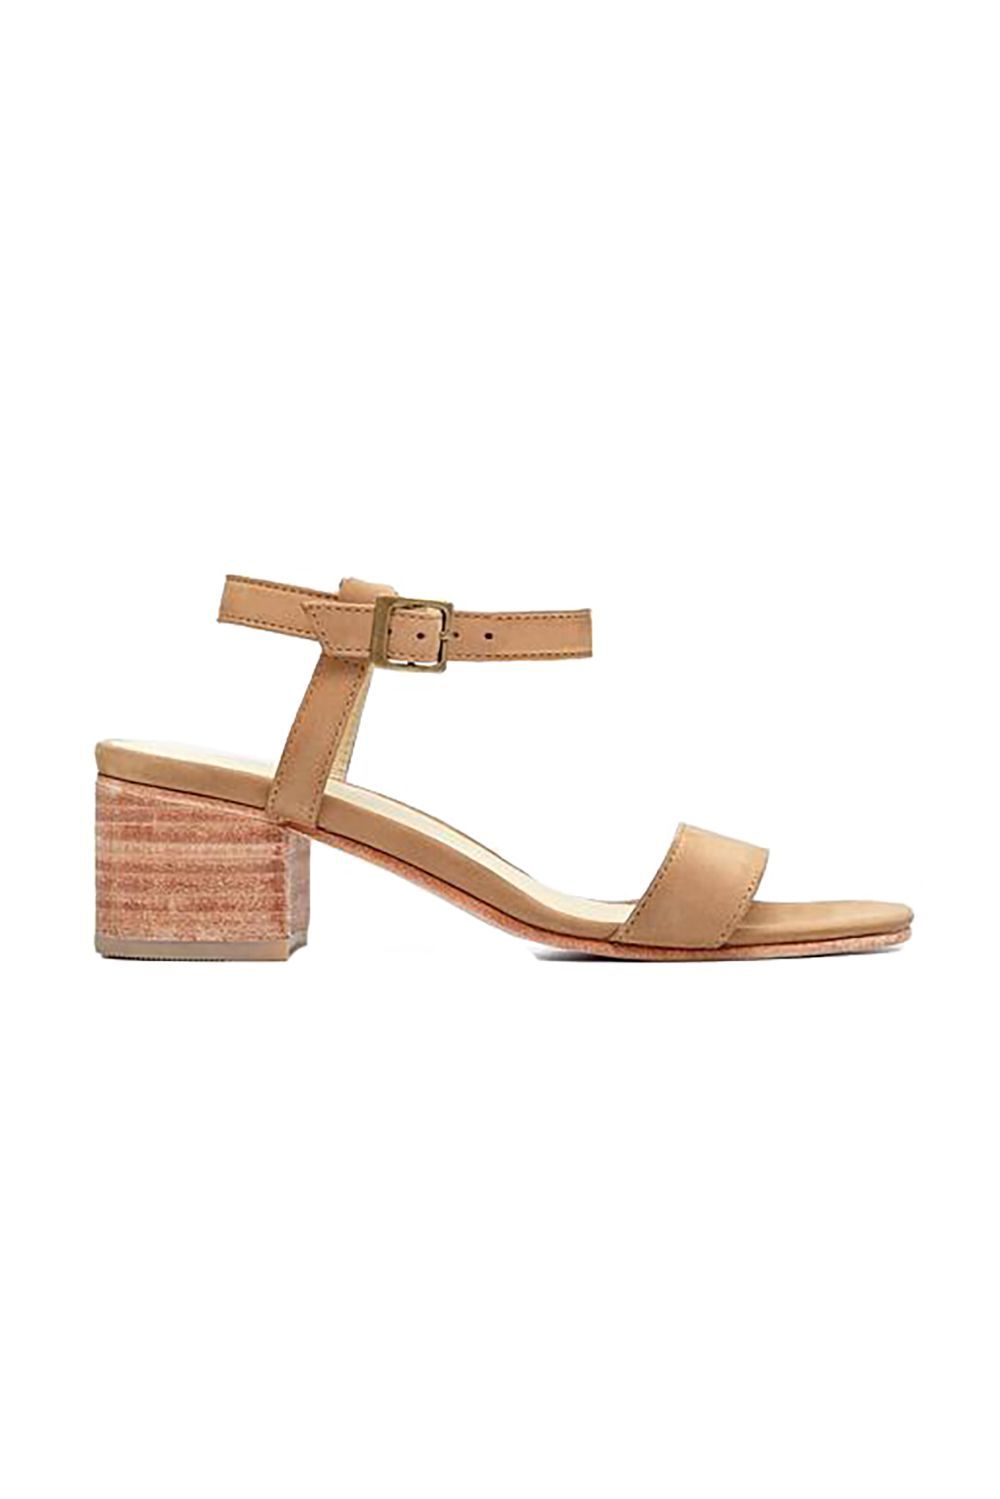 c5a03798b The Best Summer Shoes of 2019